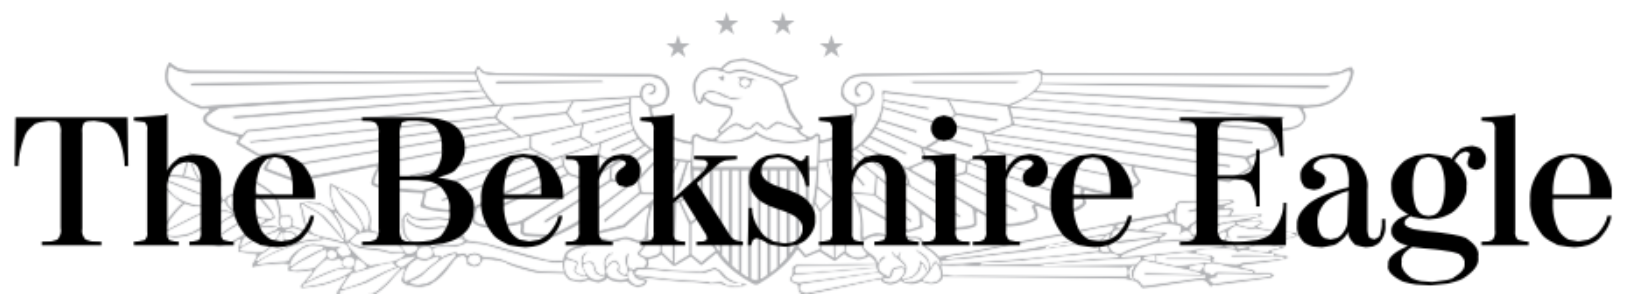 06_27_18_Alltown_TheBerkshireEagle logo